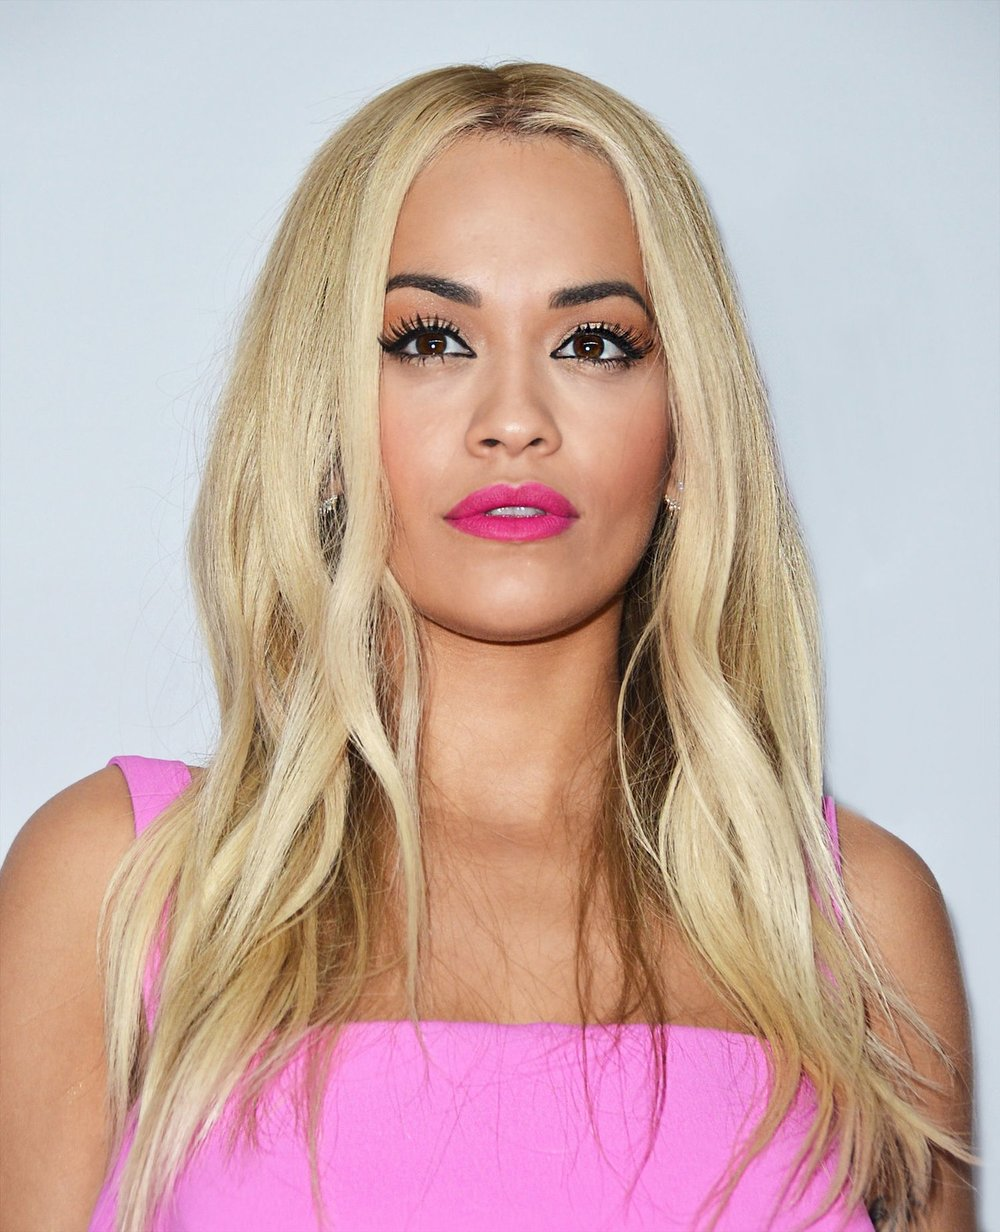 beauty-2015-09-rita-ora-beauty-secrets-main.jpg